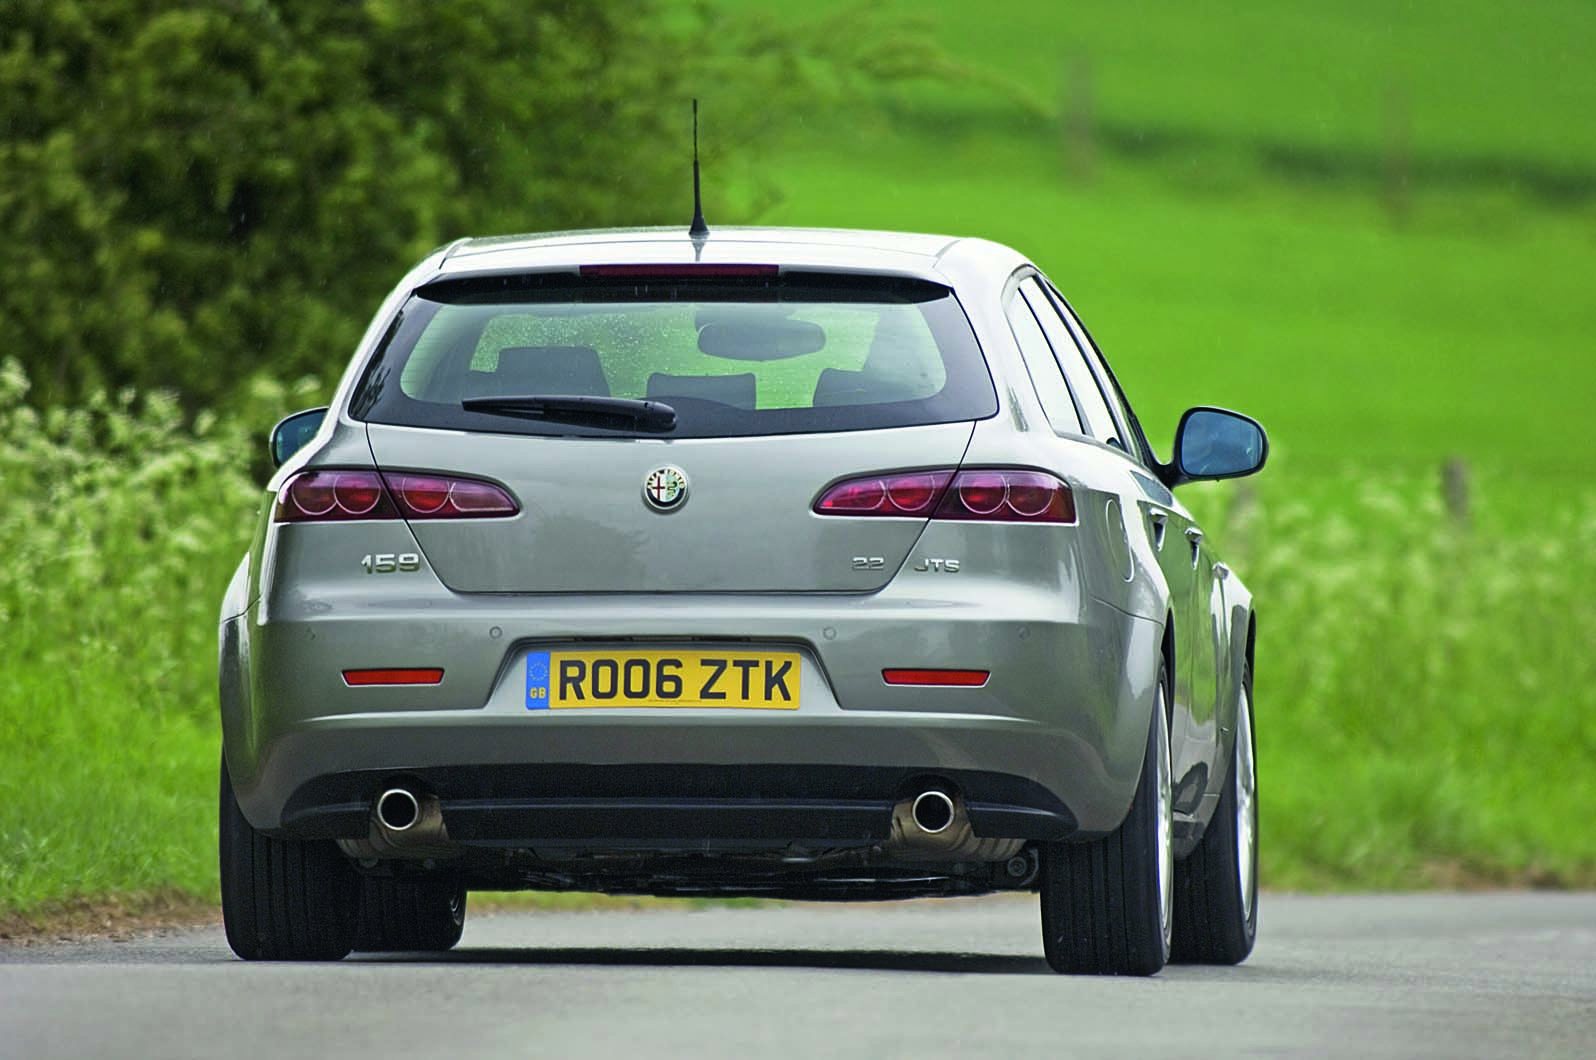 Used Car Buying Guide Alfa Romeo 159 Sportwagon Autocar